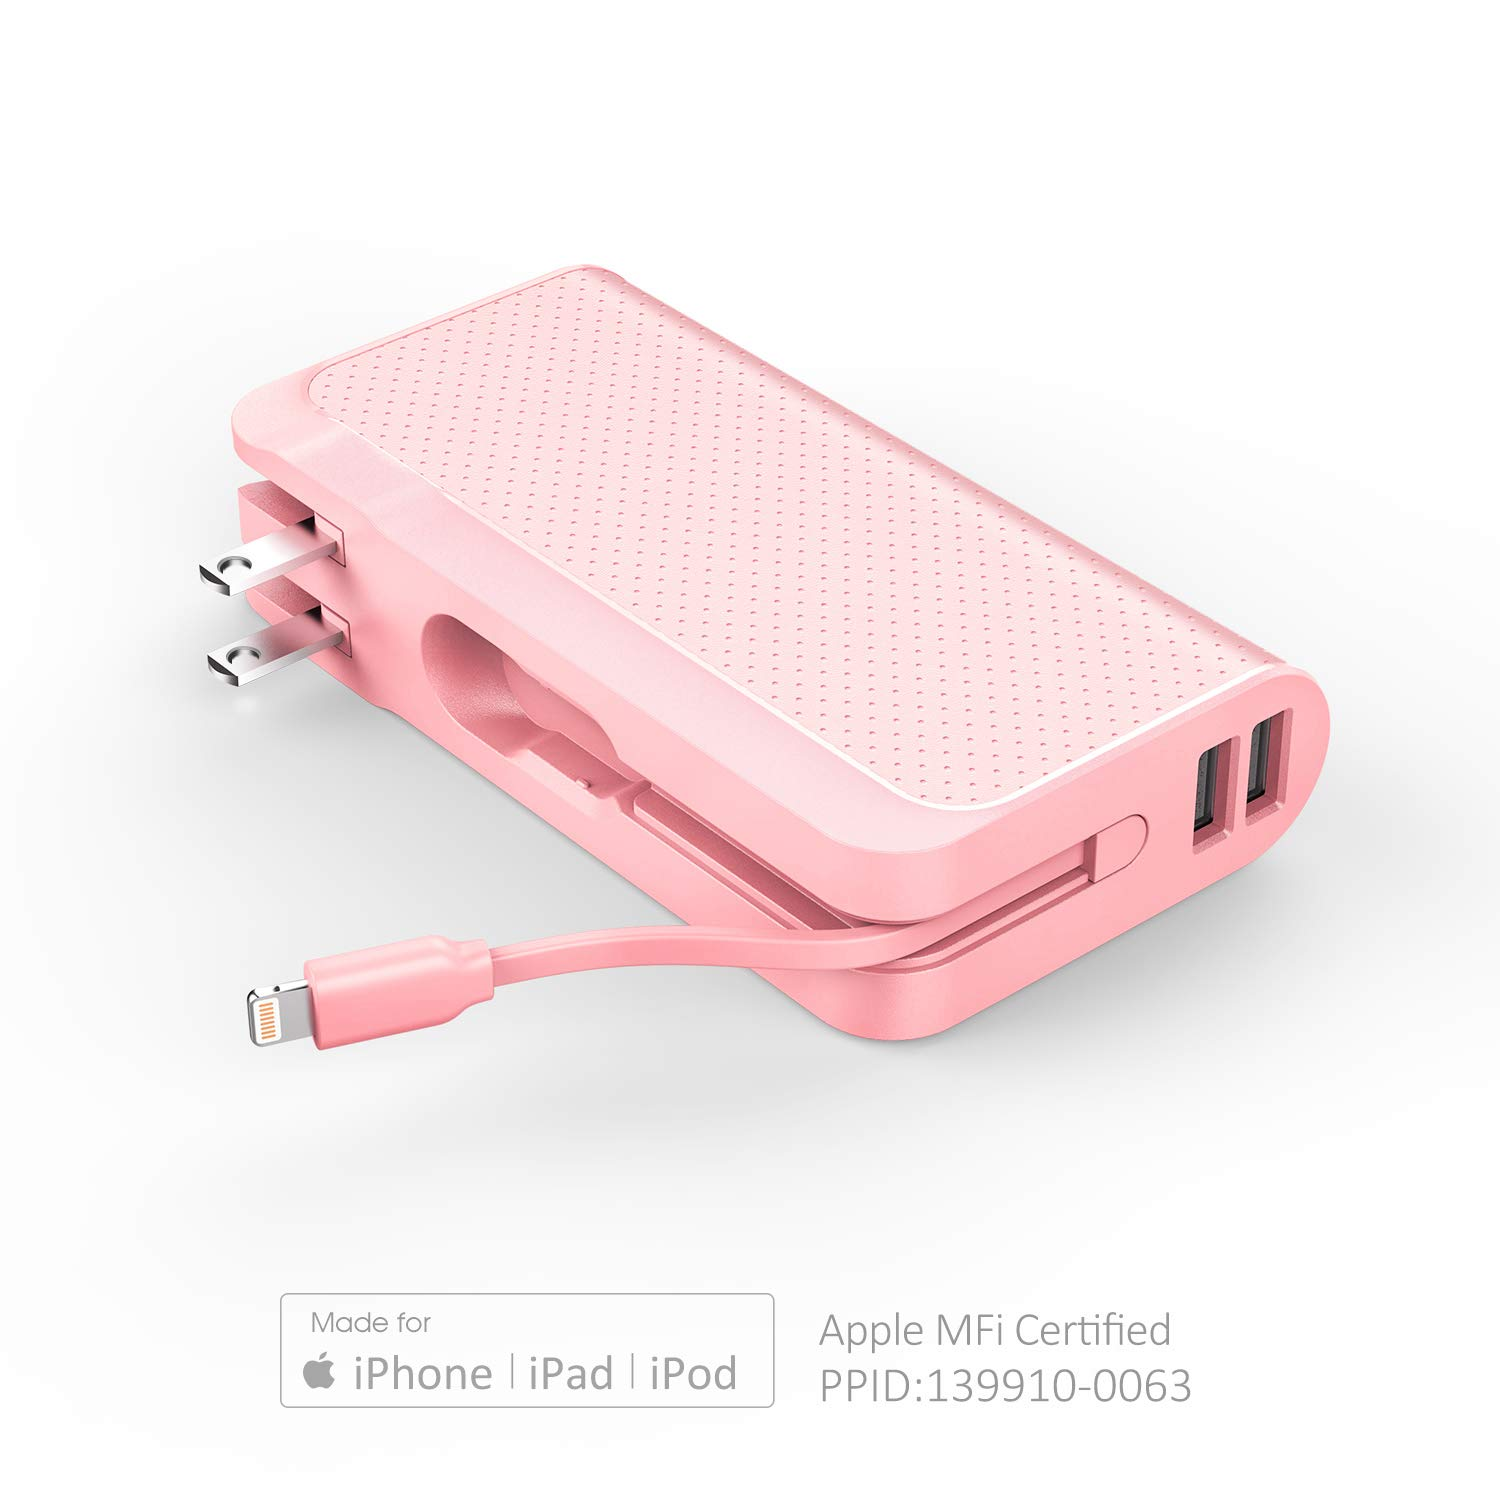 Luxtude Design-for-Trave 10000mAh 3-in-1 Portable Charger【Foldable Wall Plug, Apple Certified Lightning Cable, Dual USB Output】Power Bank for iPhone, iPad and Android (Adapter Converter Optional) Pink